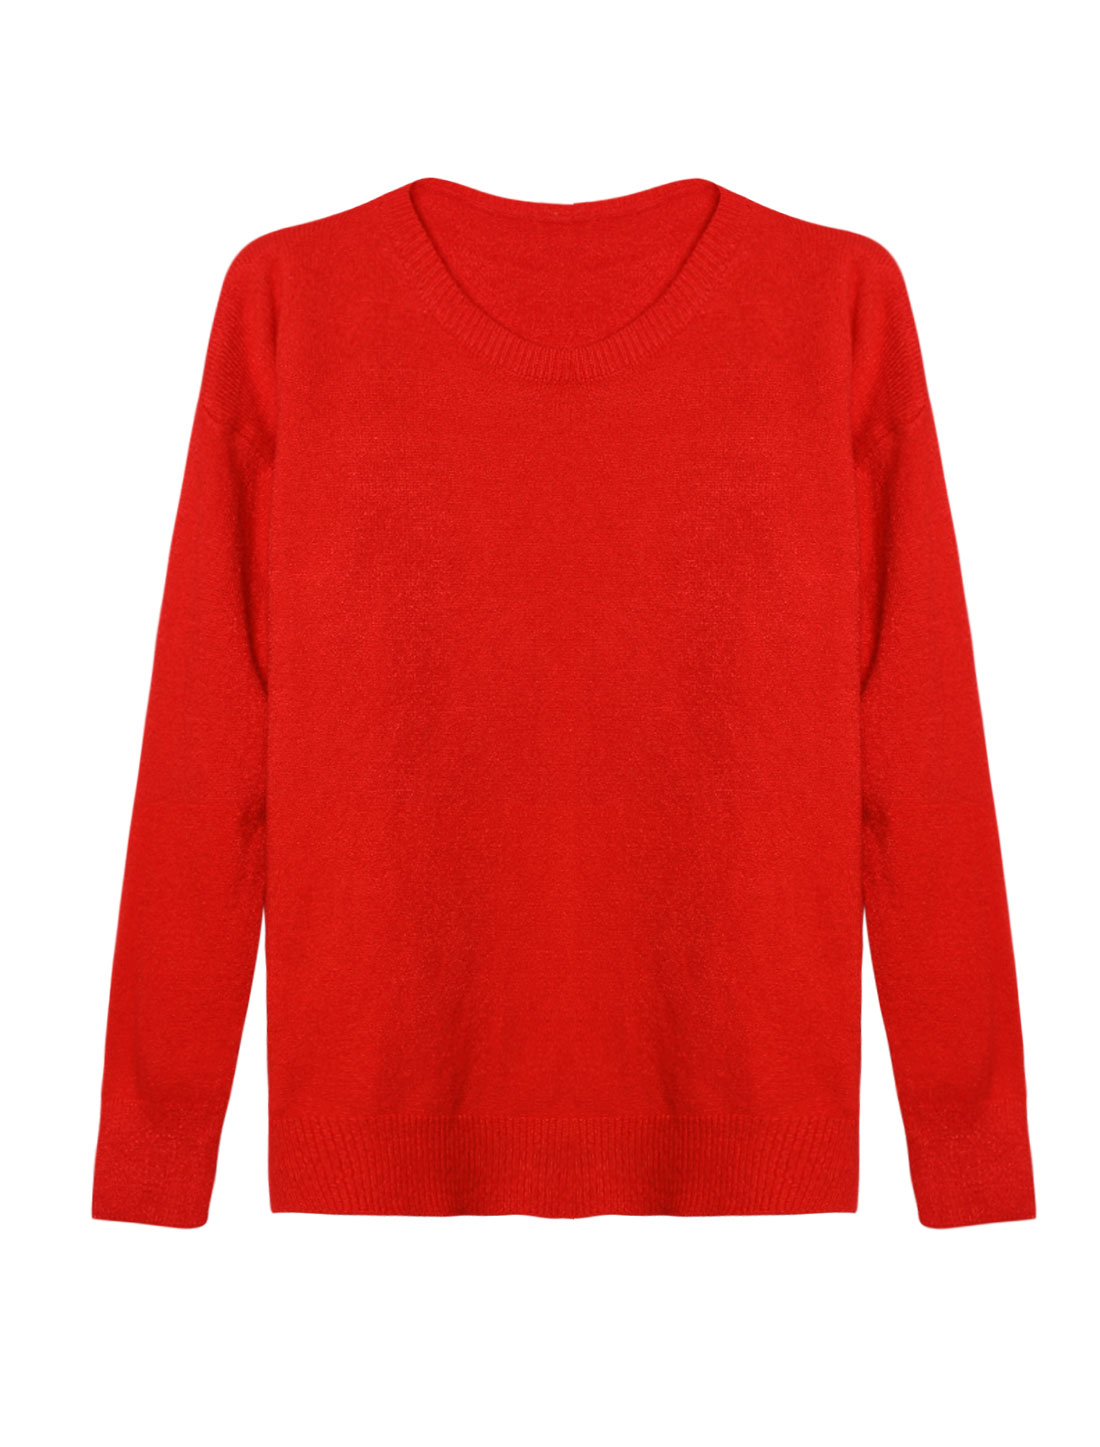 Woman Crew Neck Dolman Sleeves Ribbed Trim Knit Shirt Red XS